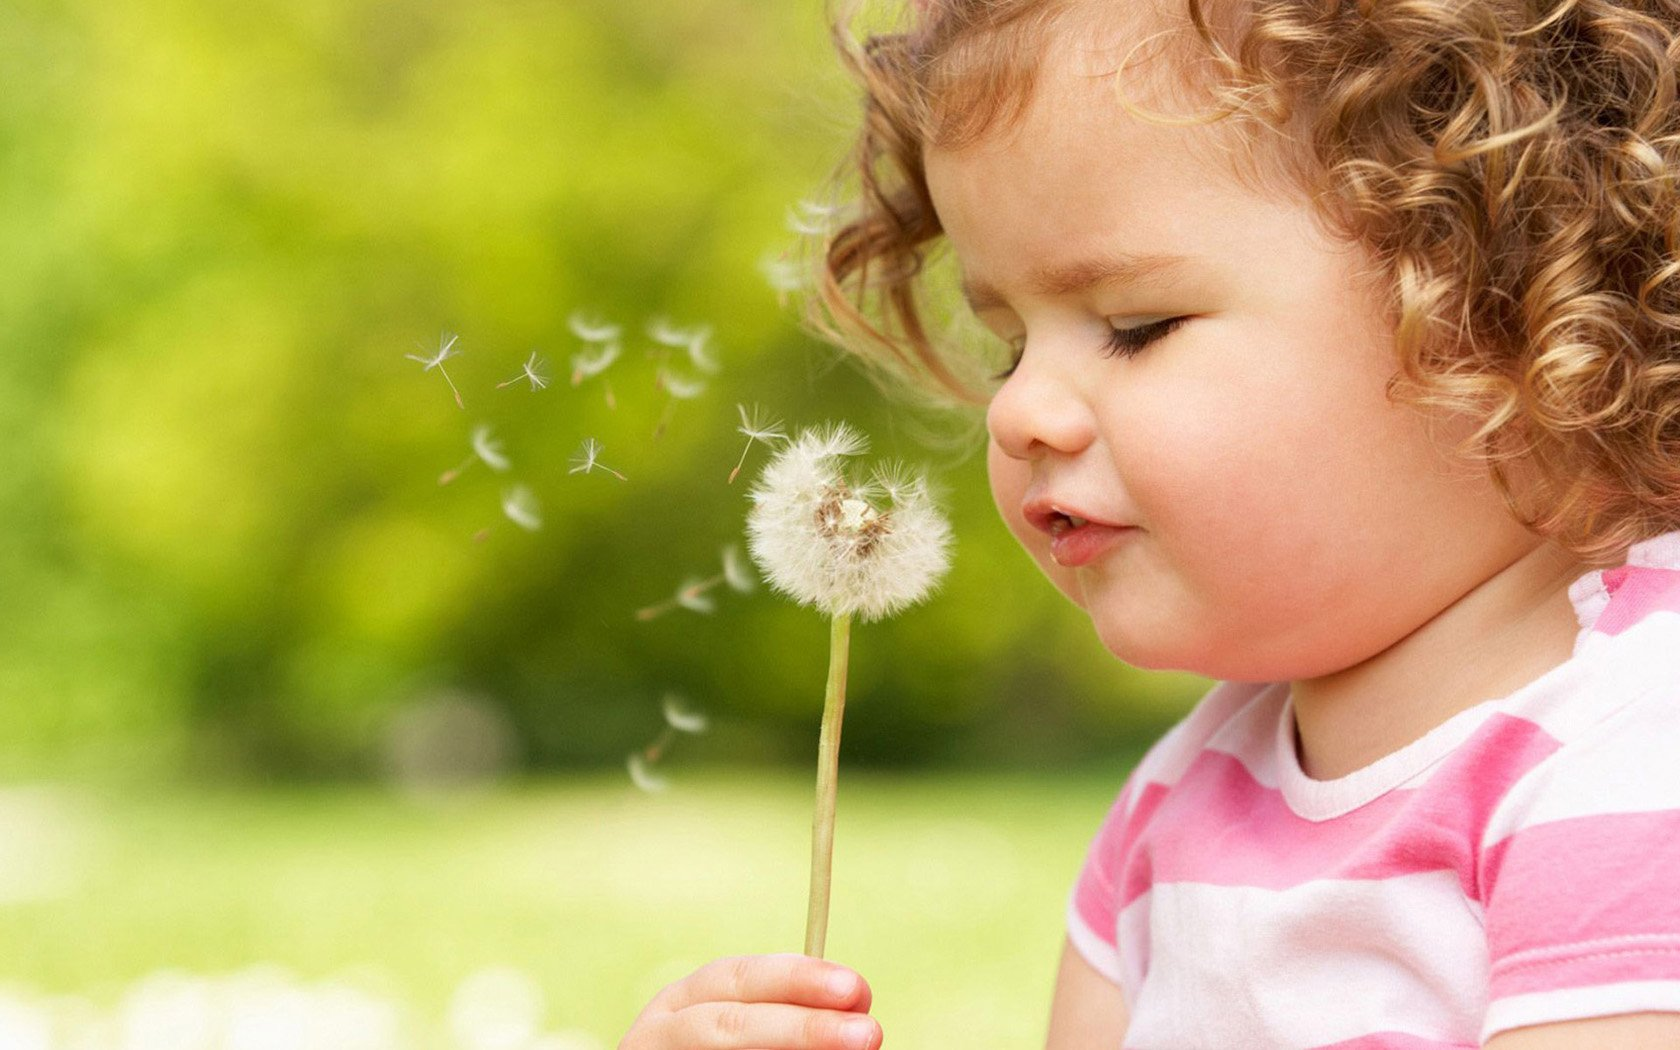 Blowing Dandelion Wallpaper Cute child blowing dandelion 1680x1050